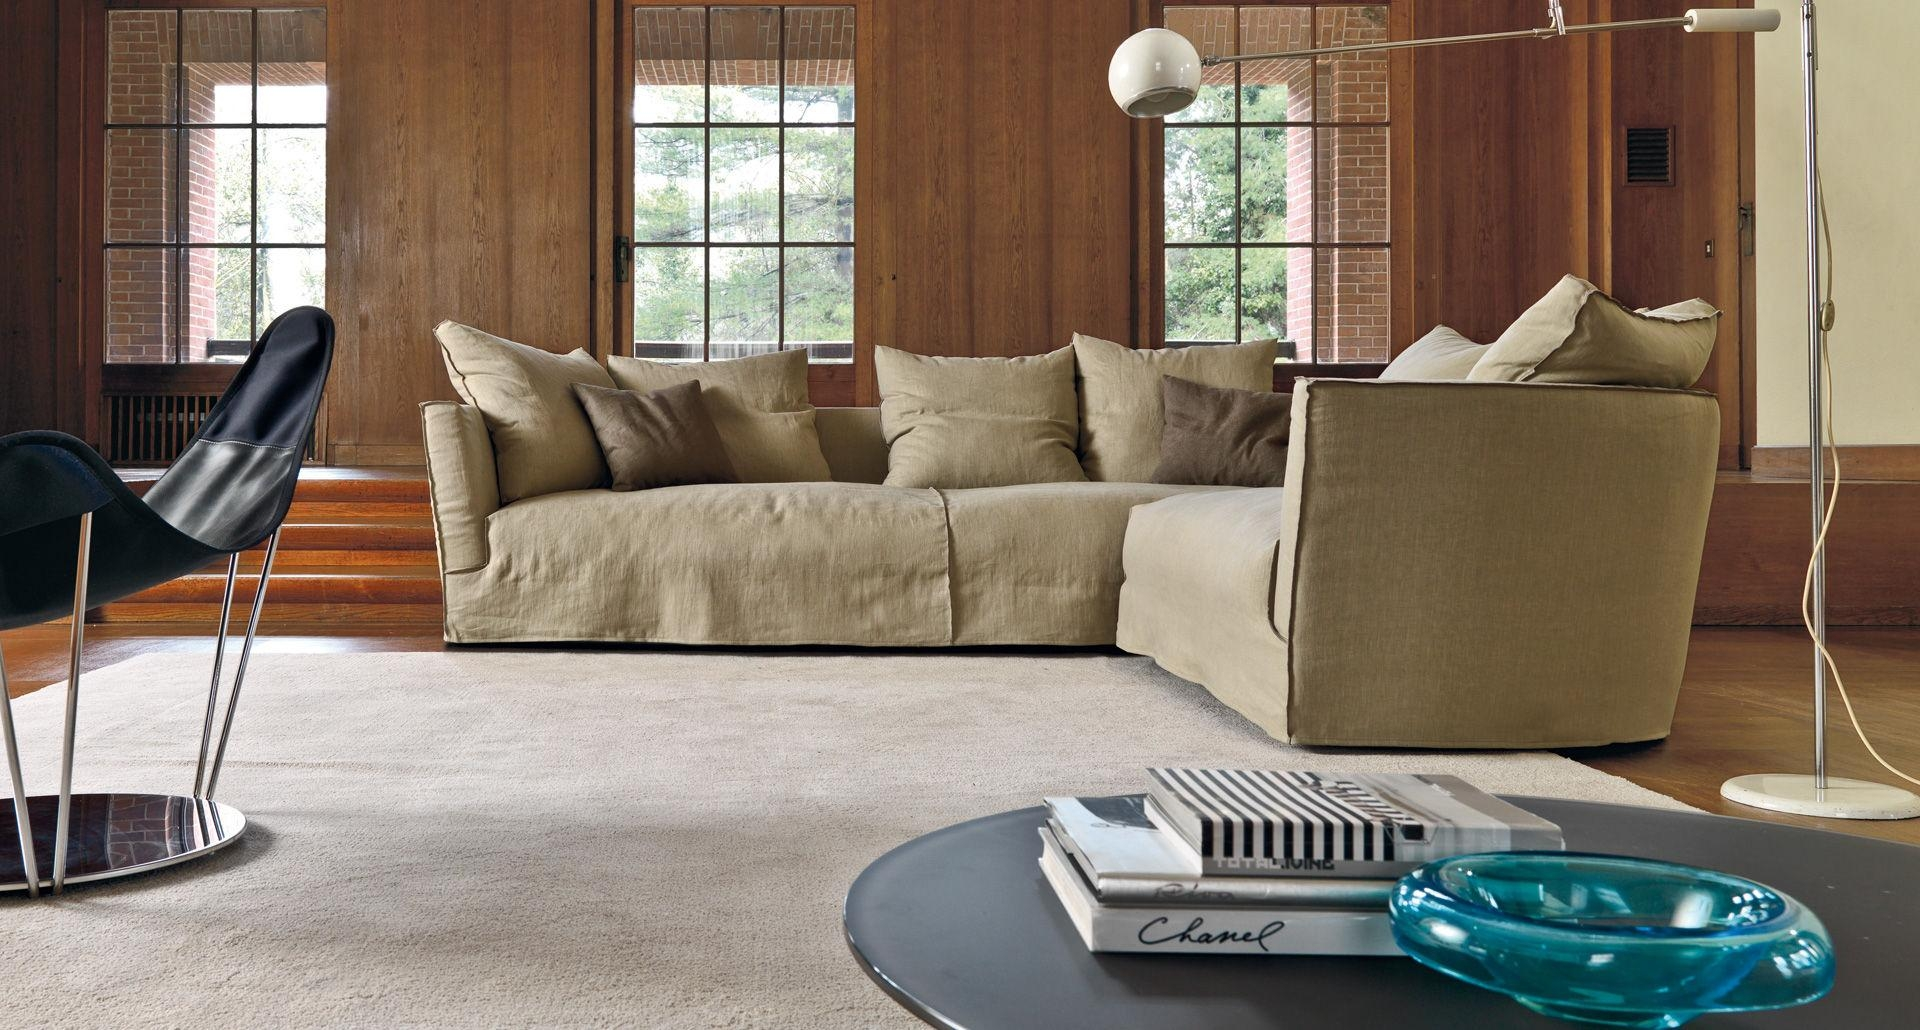 Modular Sofa / Contemporary / Fabric / 4 Seater – Lov Trend Pertaining To Sofa Trend (Image 5 of 20)